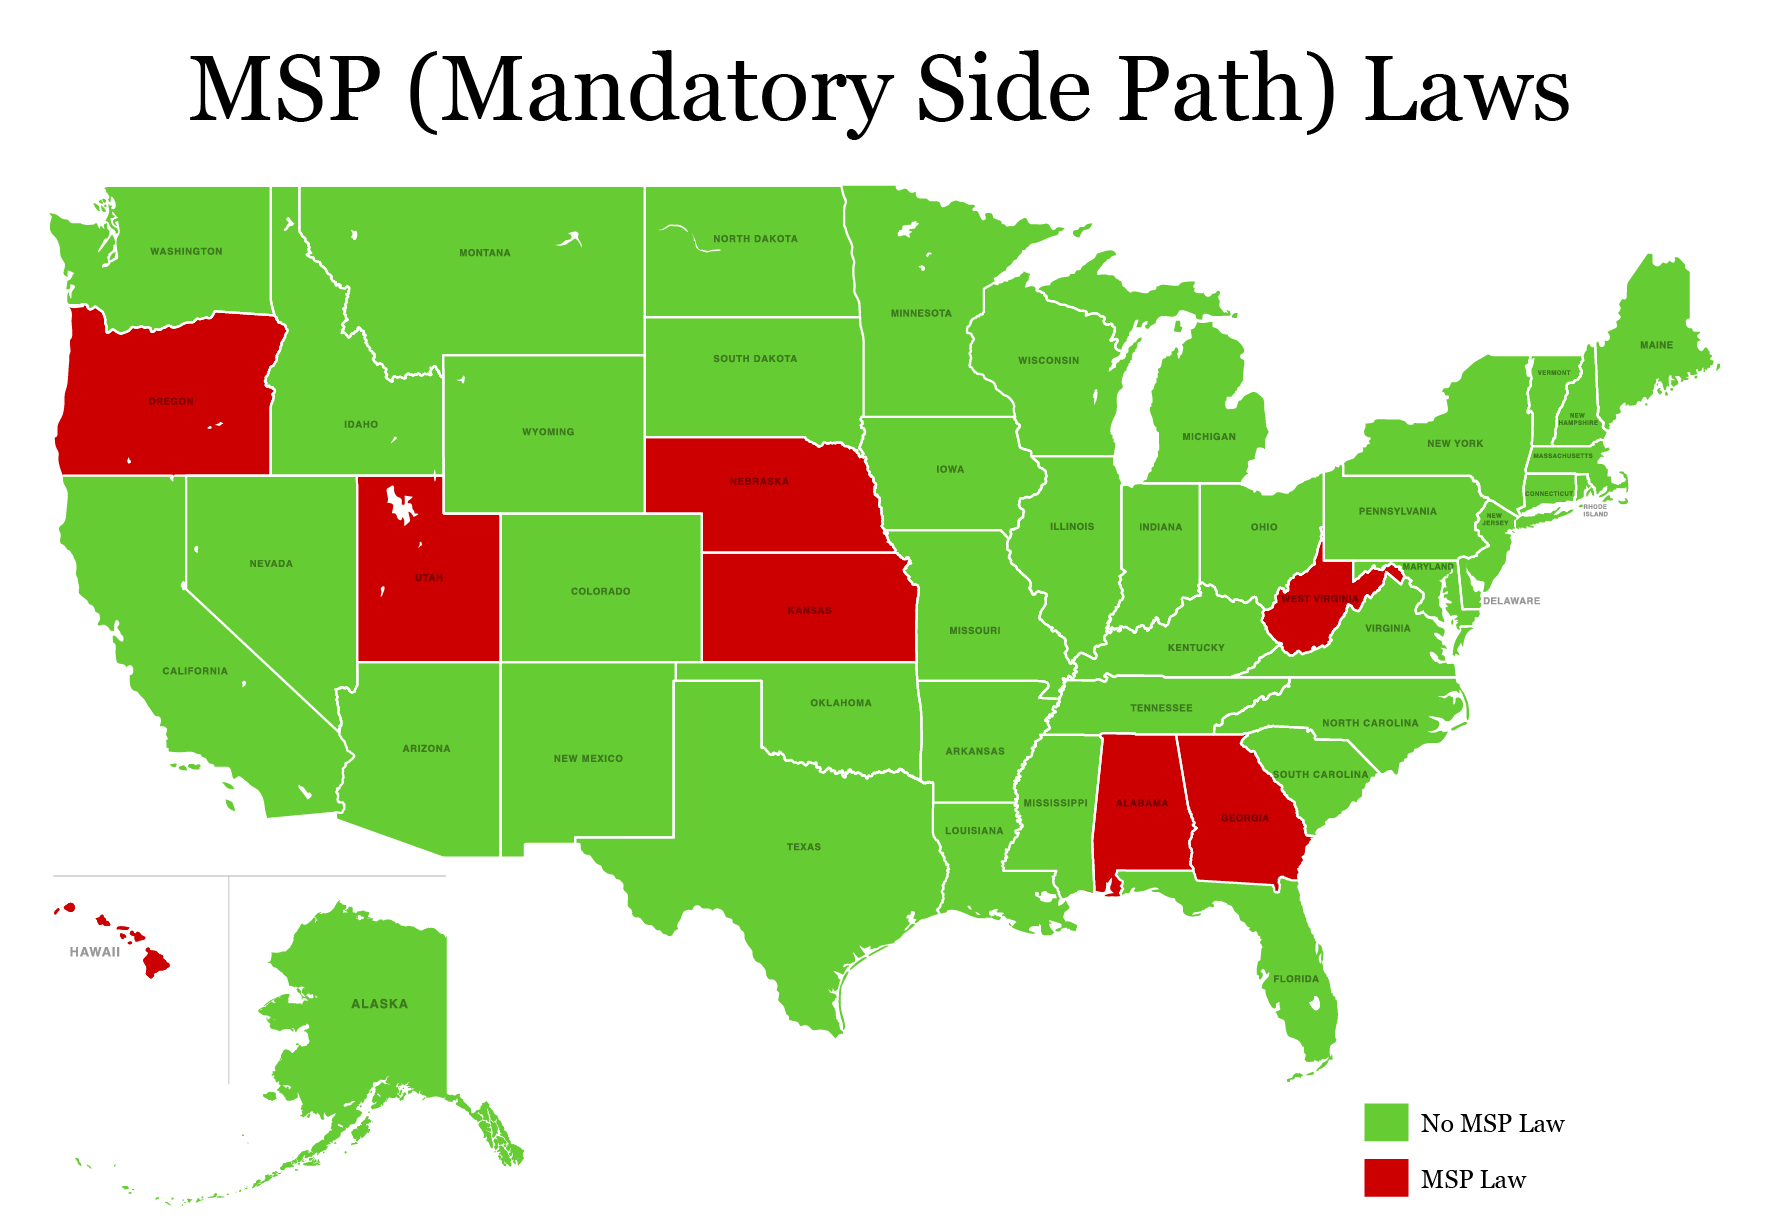 states with MSP law